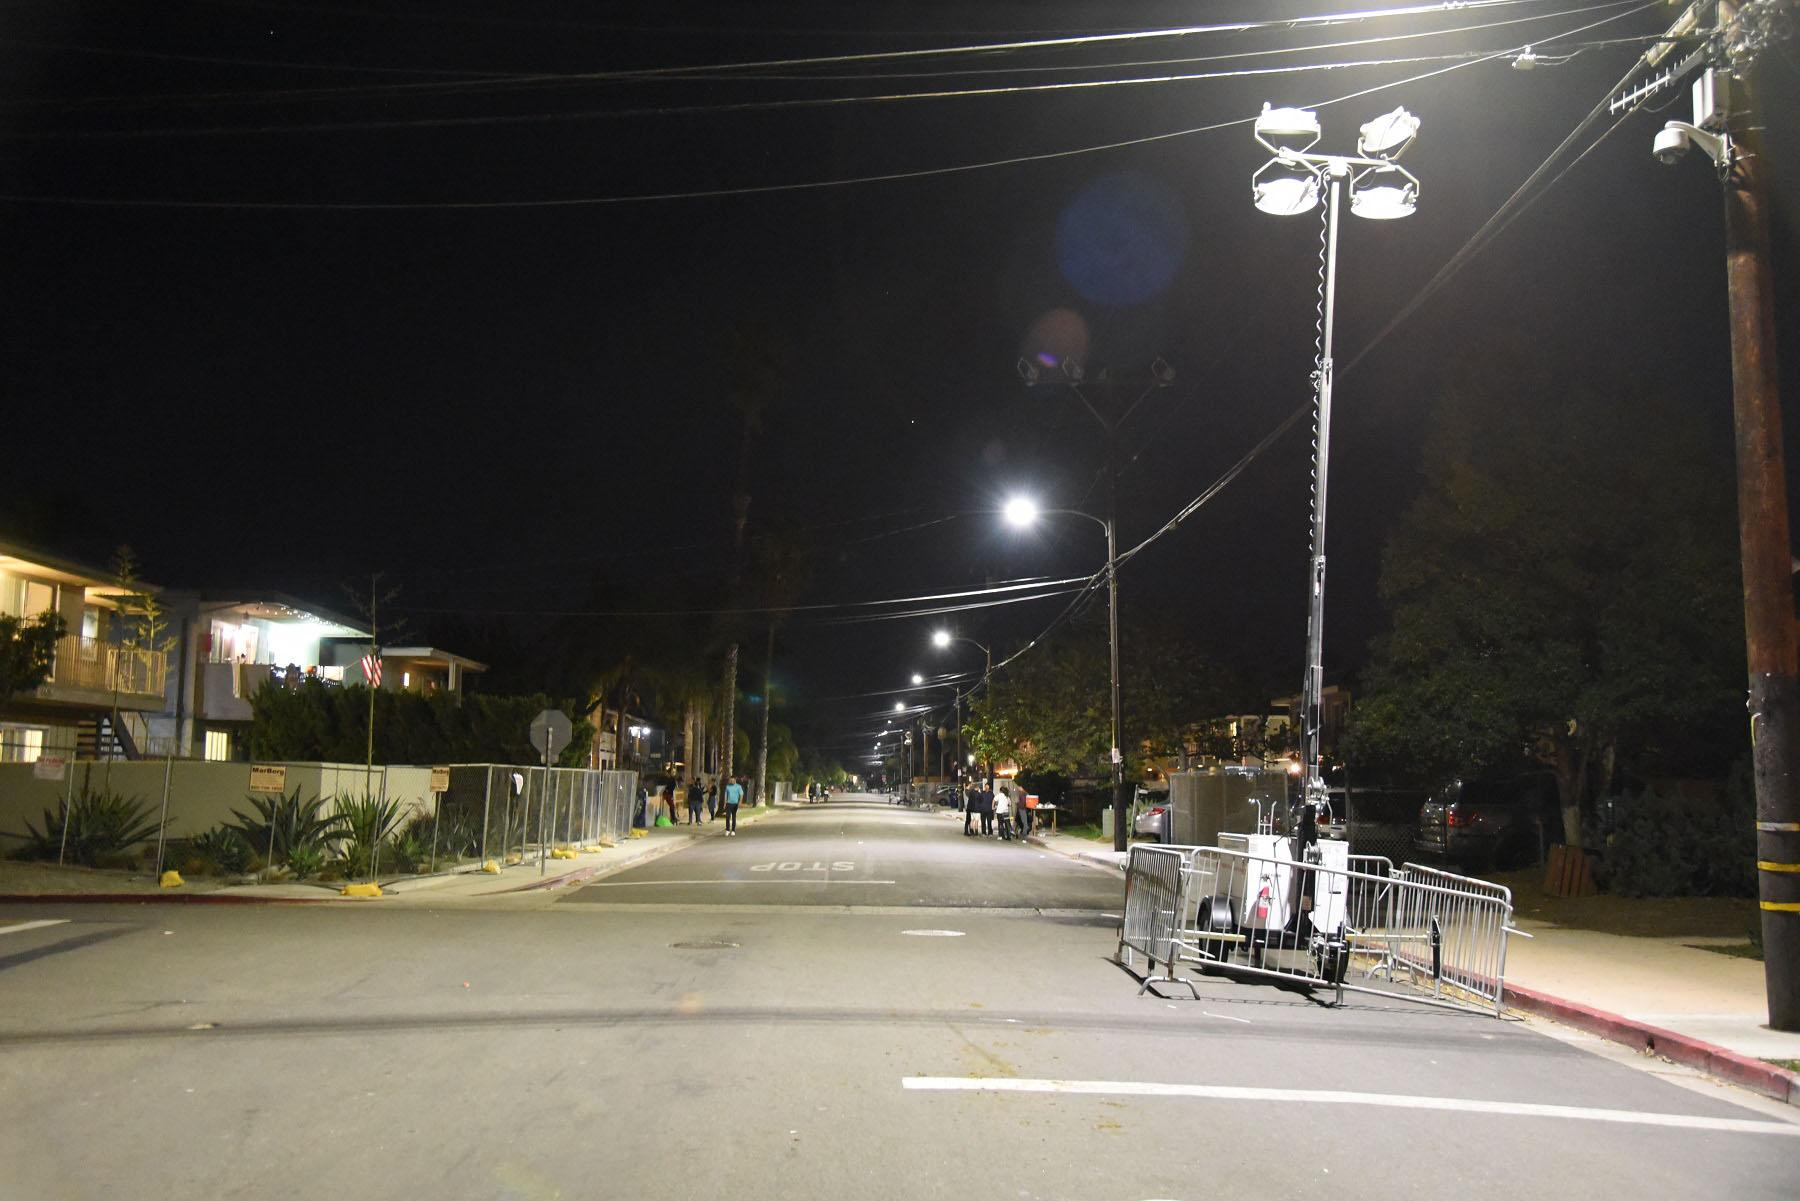 isla vista remains unusually calm over halloween weekend – the channels